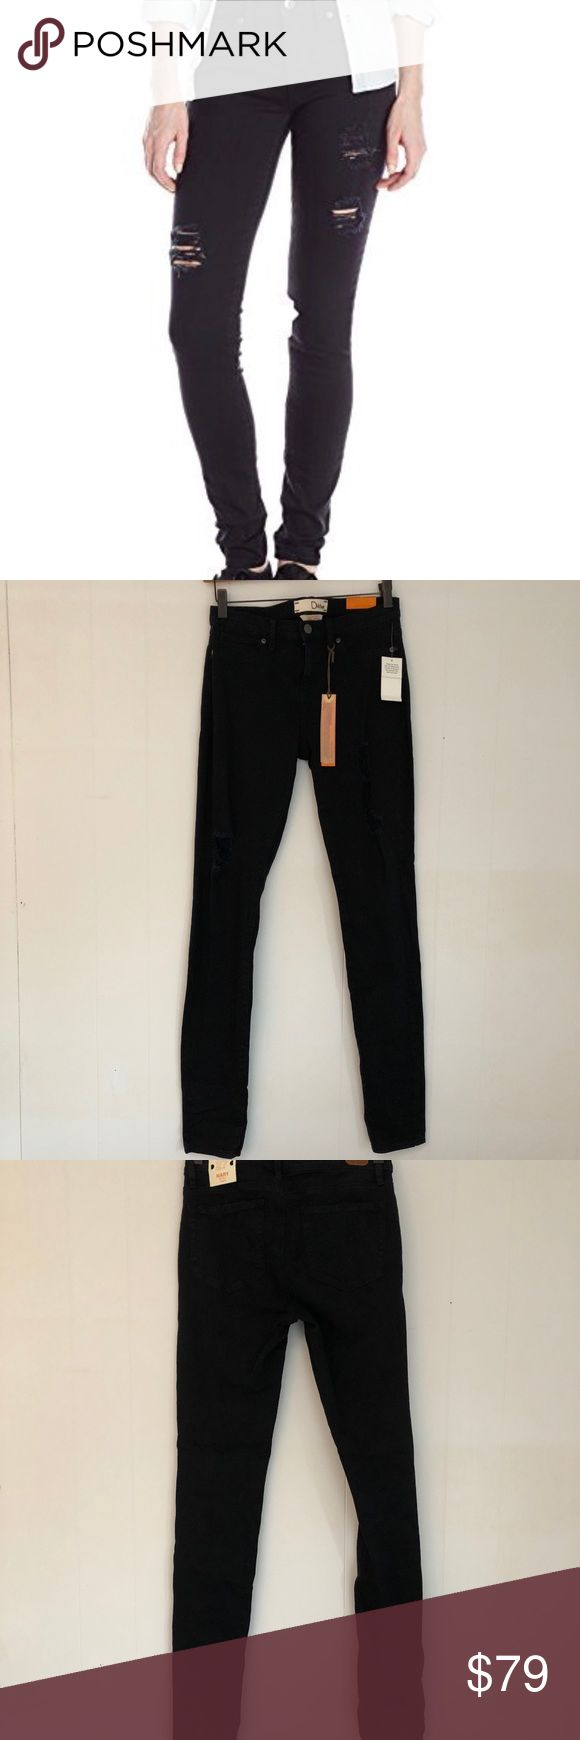 Dittos Mary Legging Jean Black Ripped Up Dittos Mary Legging Jean Black Ripped Up.  Midrise legging black with destruction.  Size 27 Black Dittos Jeans Skinny